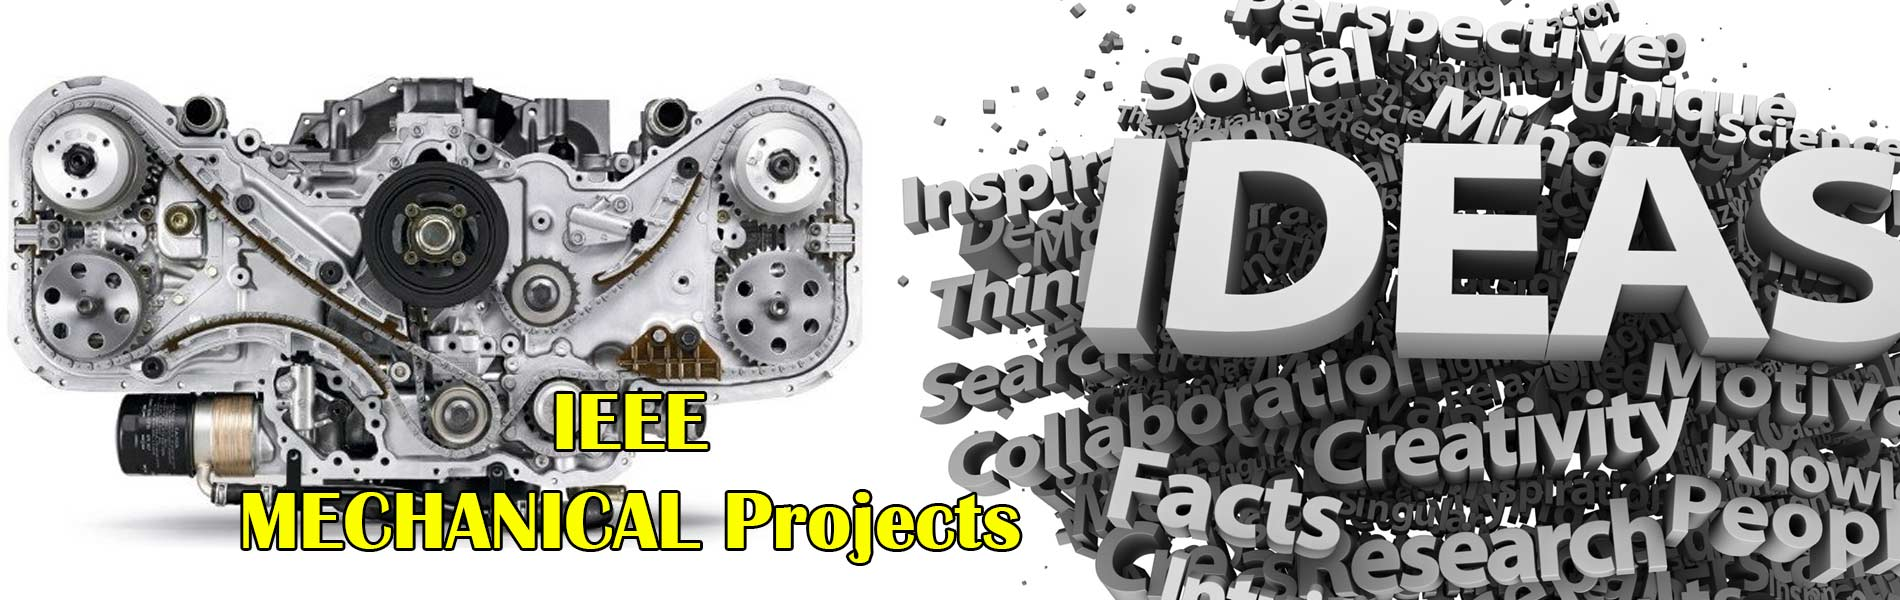 ieee-mechanical-finalyear-project-in-chennai